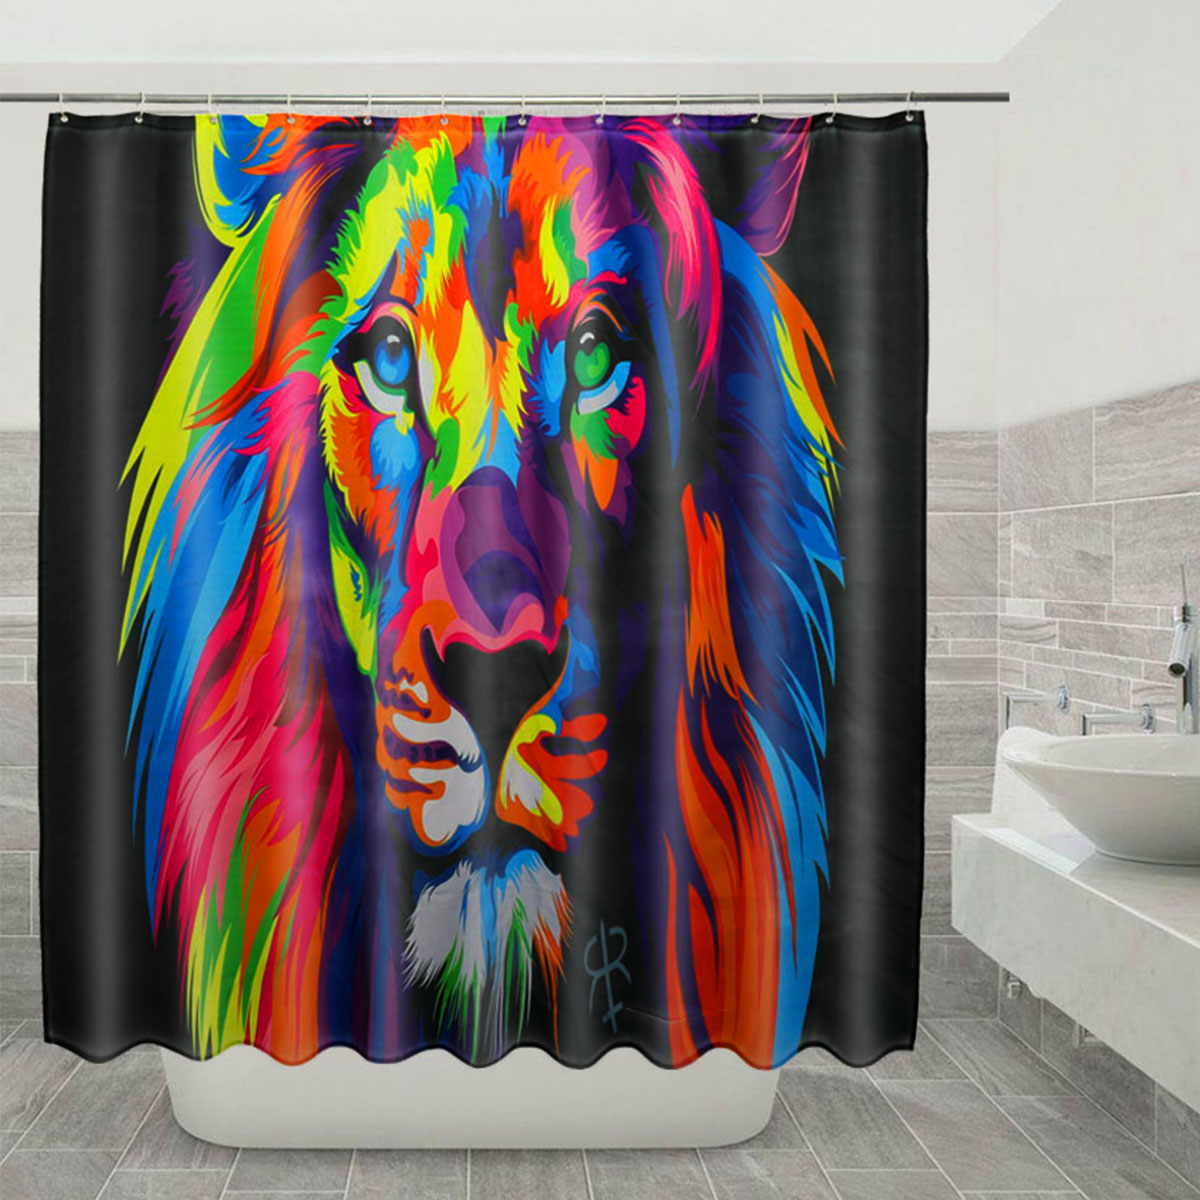 The Earth Patterns Waterproof Fabric Home Decor Shower Curtain Bathroom Mat